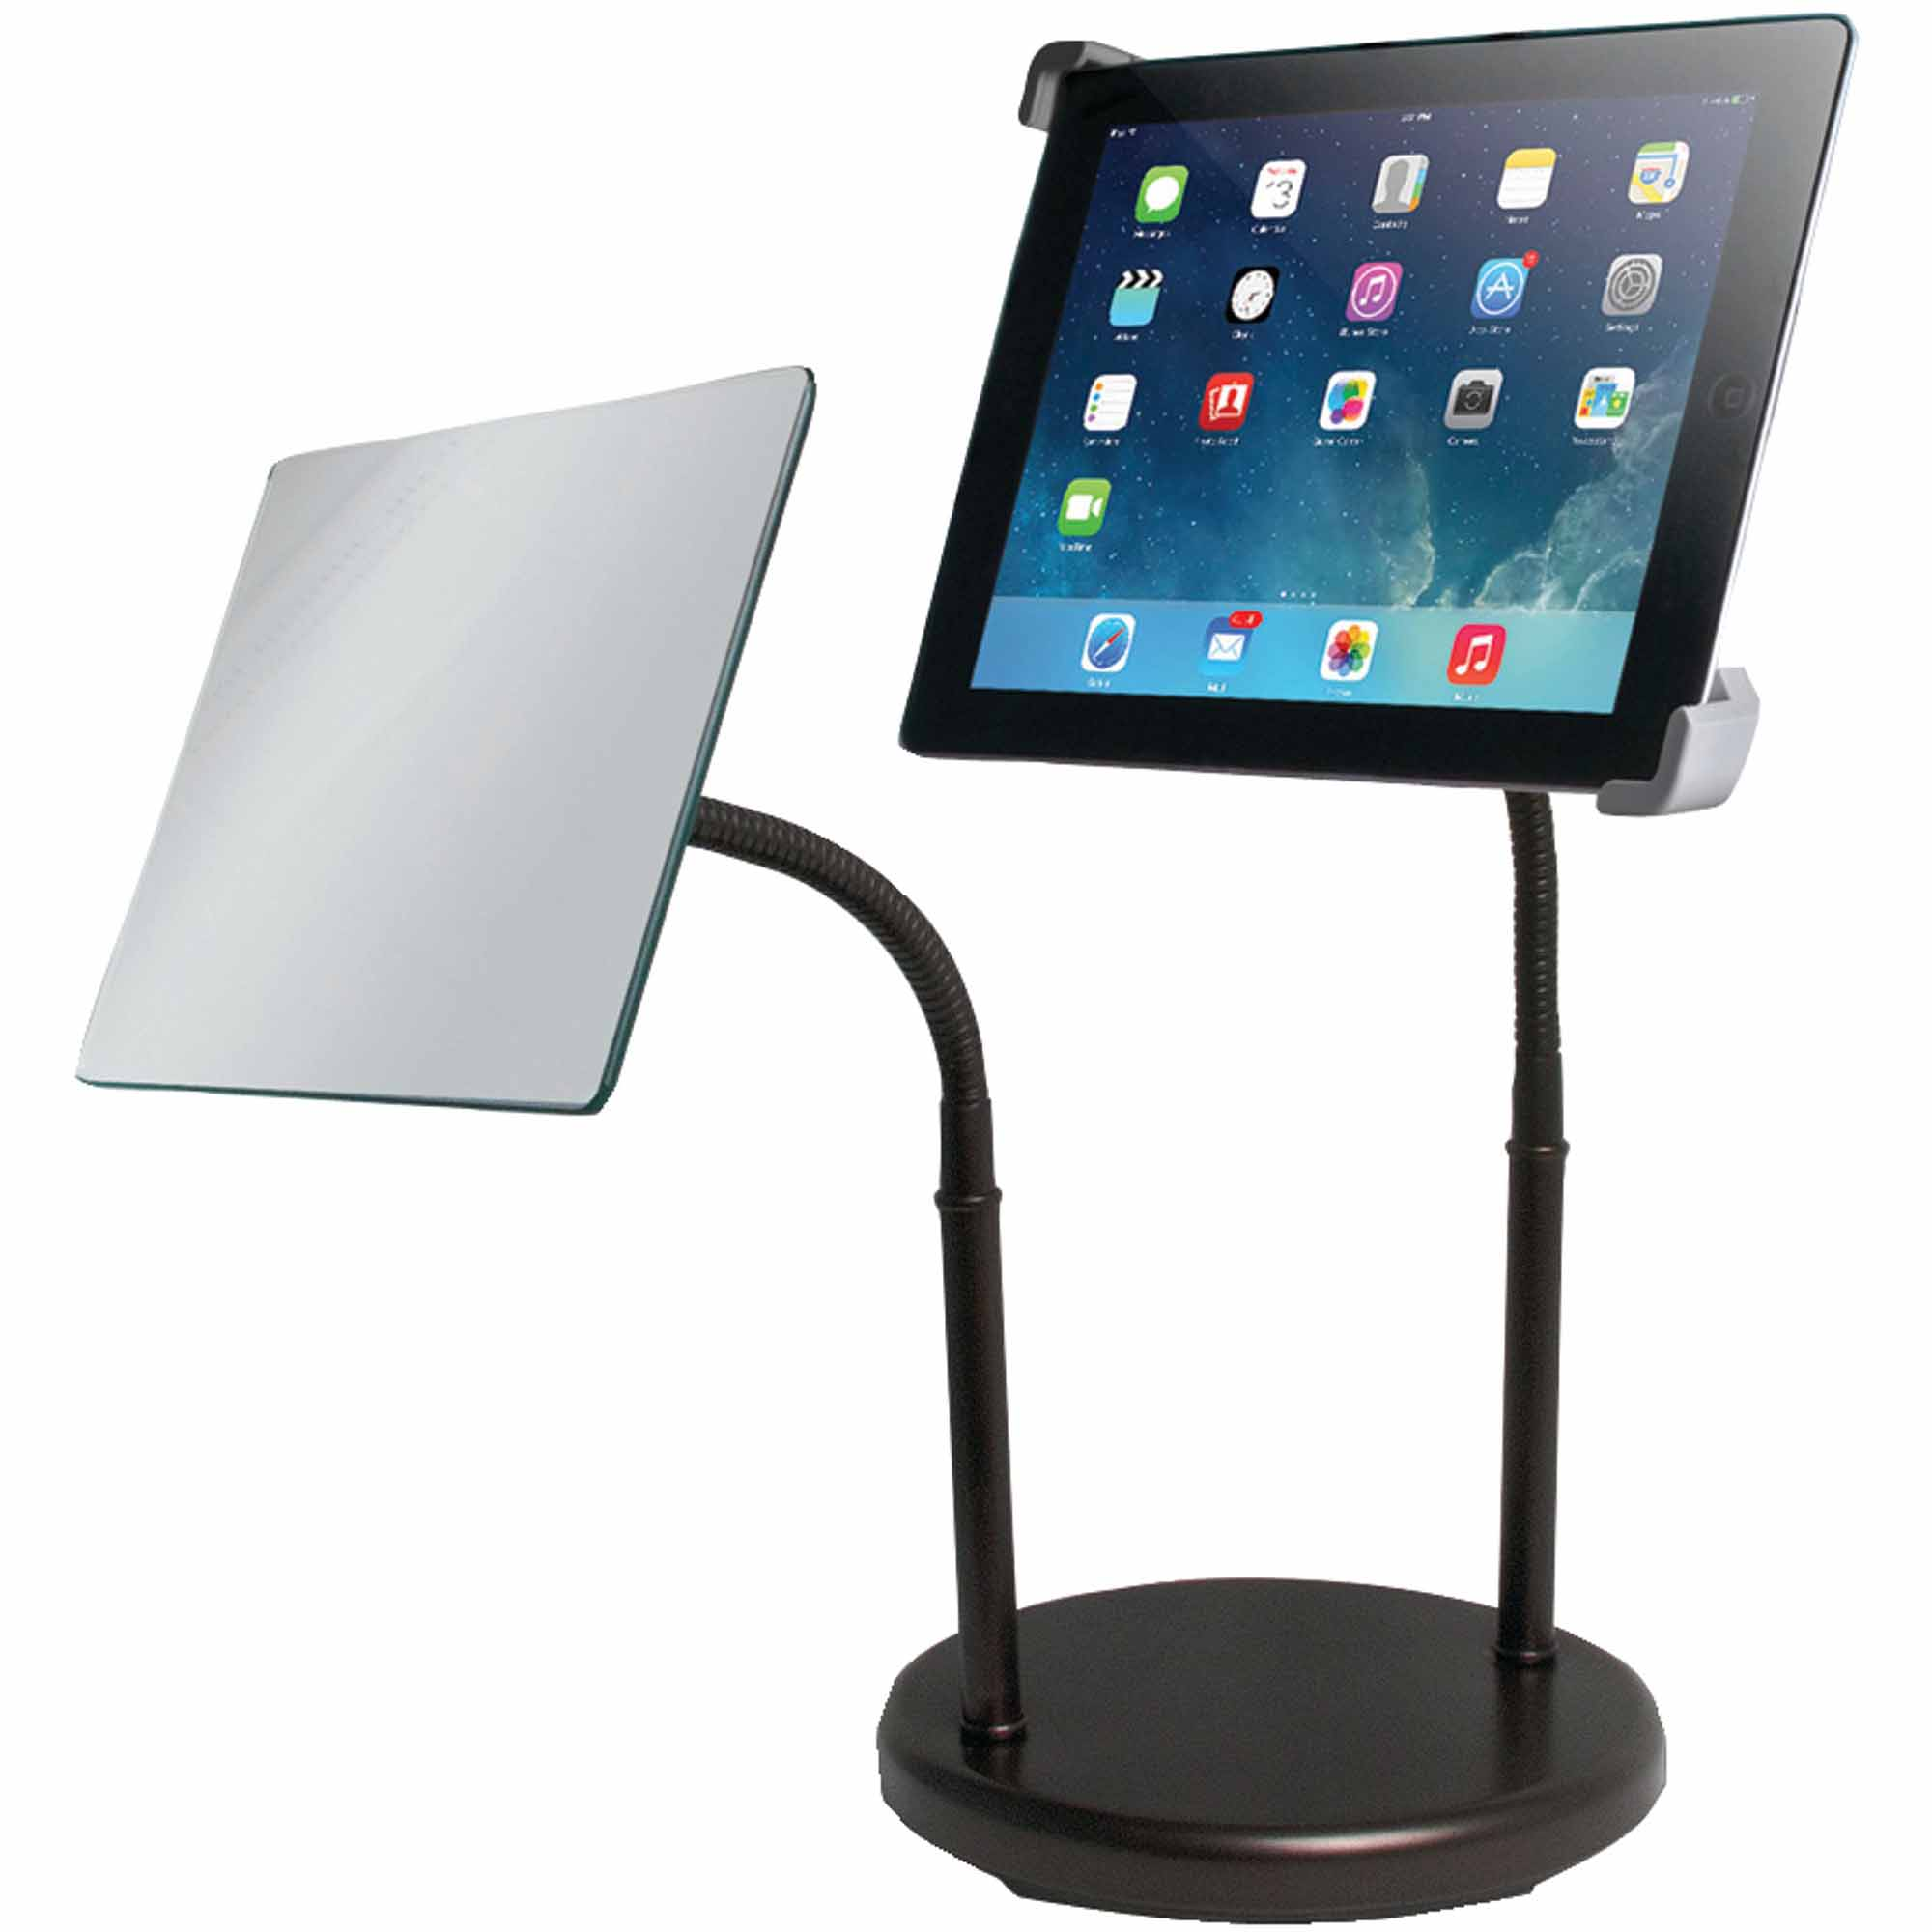 CTA Pad-gtsm Gooseneck Tabletop Stand with Makeup Mirror for Apple iPad and Tablets